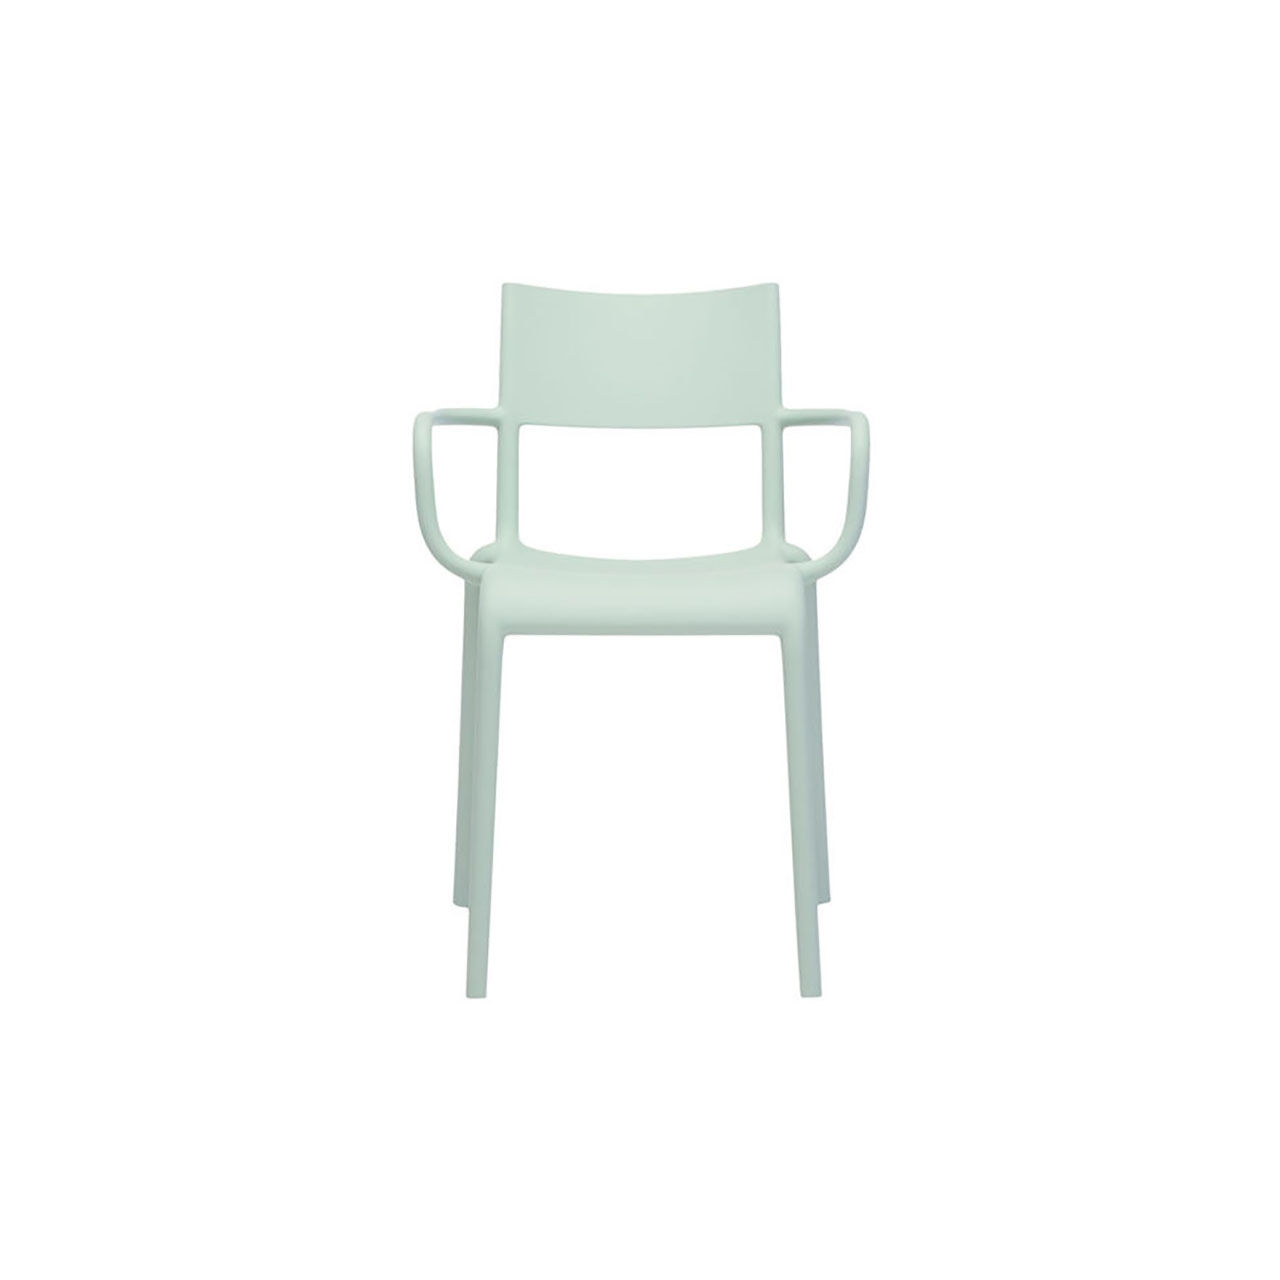 Generic Chair A Set of 2 in Sage Green by Kartell